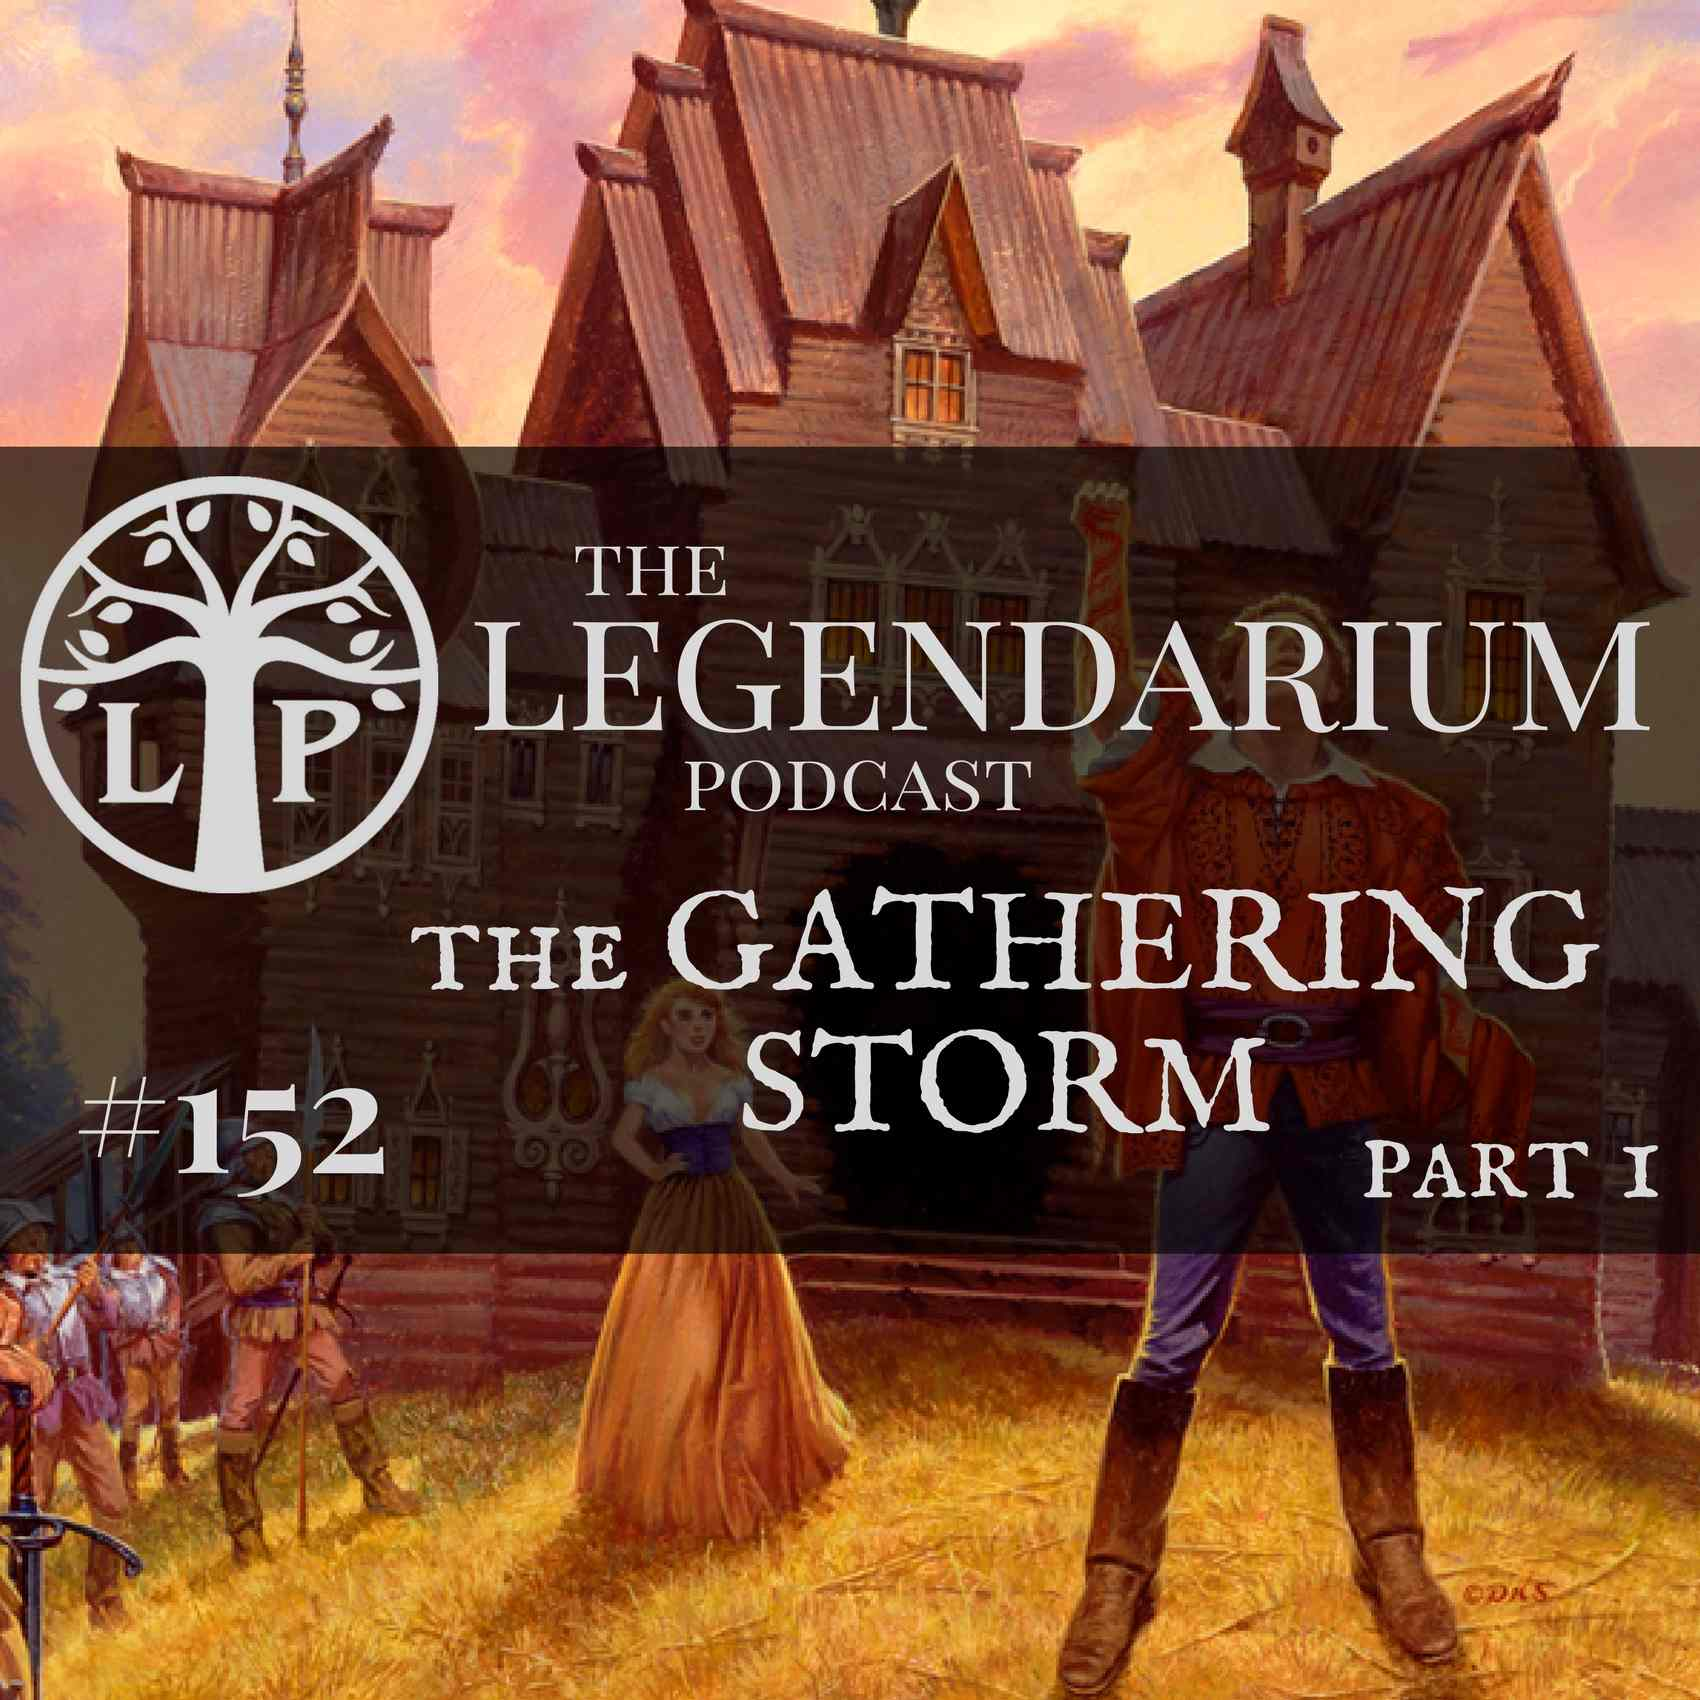 #152. The Gathering Storm, part 1